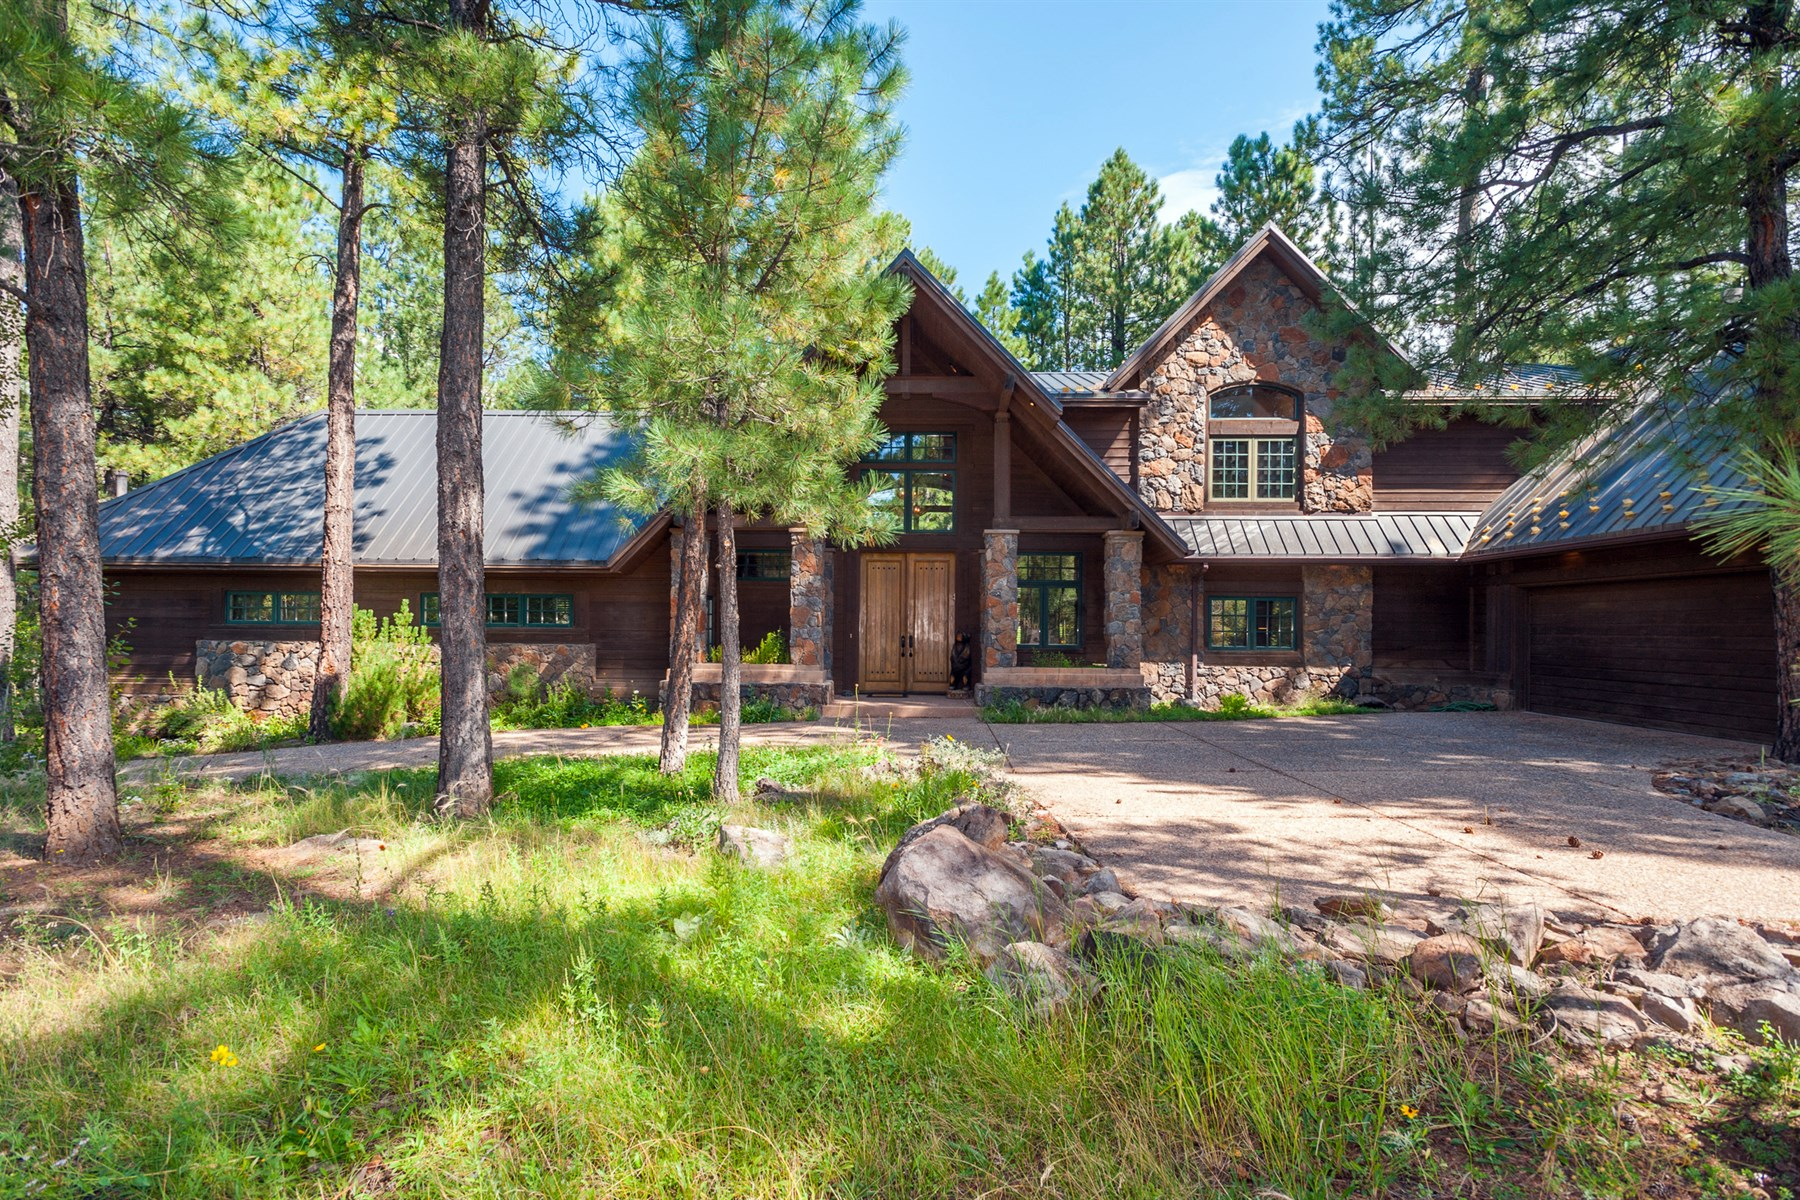 Single Family Home for Sale at magnificent Sandelin designed retreat is perfectly situated among the tall pines 58-2764 Bear Howard Flagstaff, Arizona 86005 United States